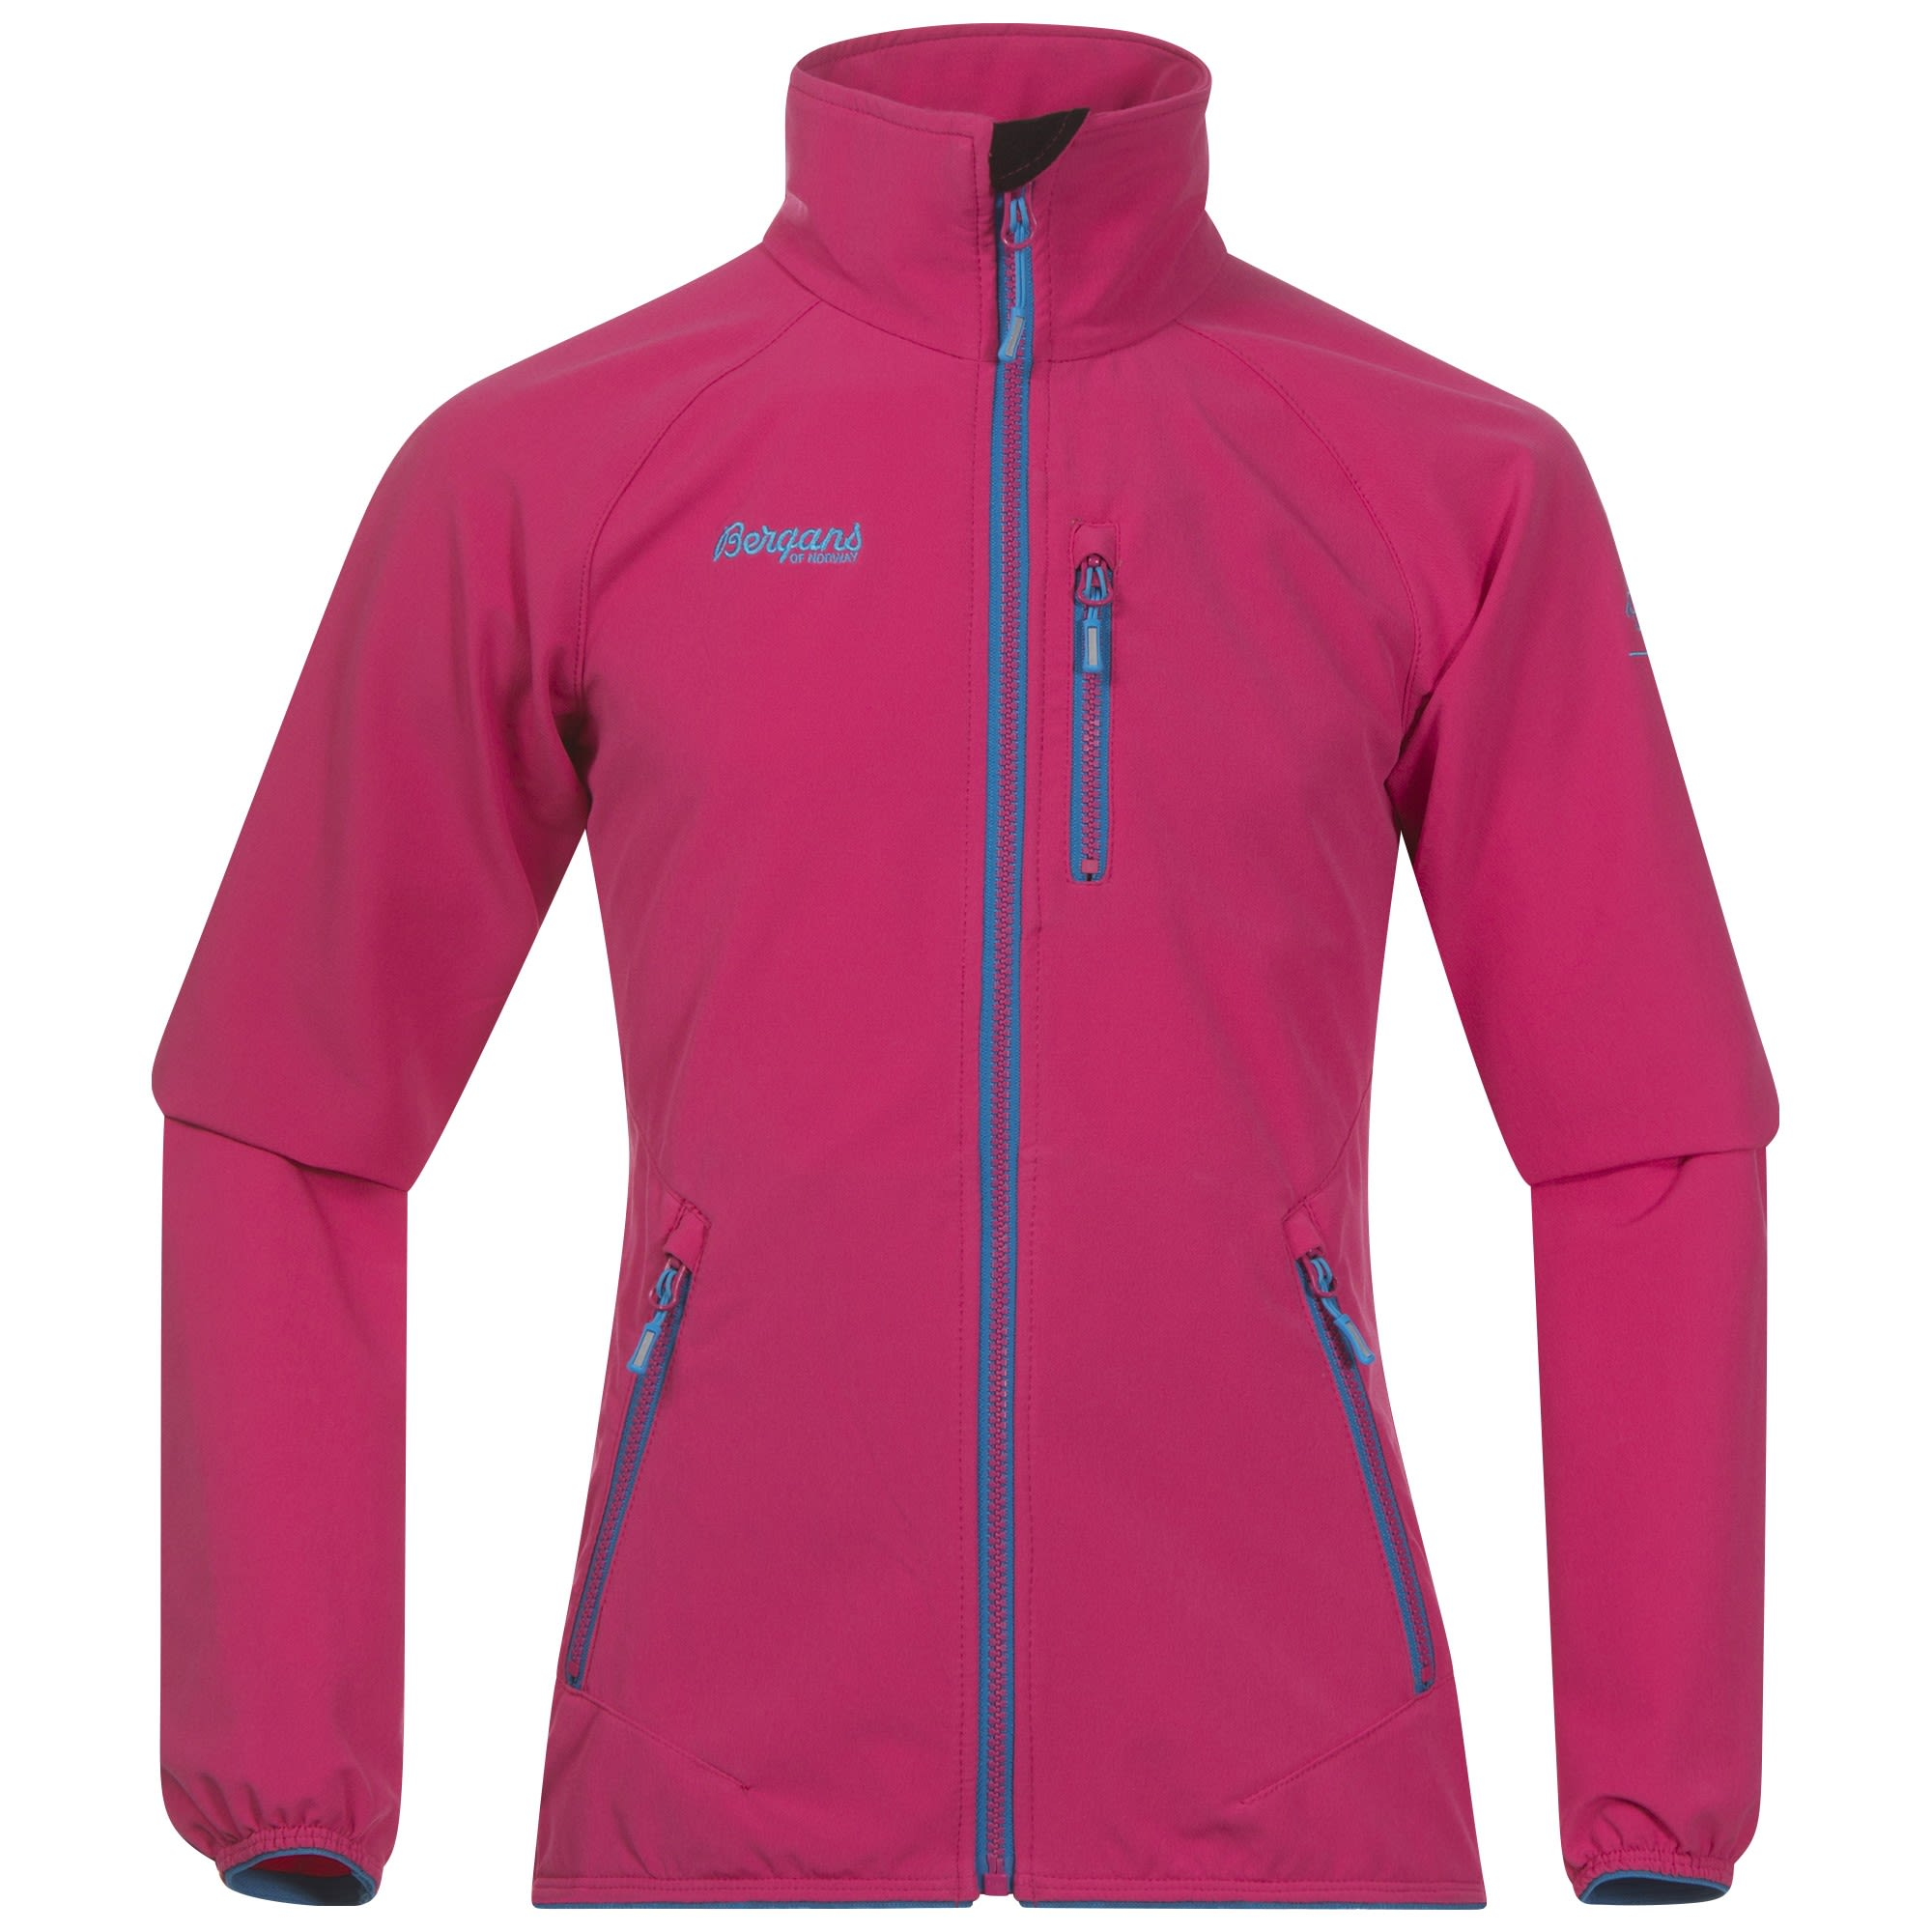 Bergans Kjerag Youth Girl Jacket Pink, Female Freizeitjacke, 164